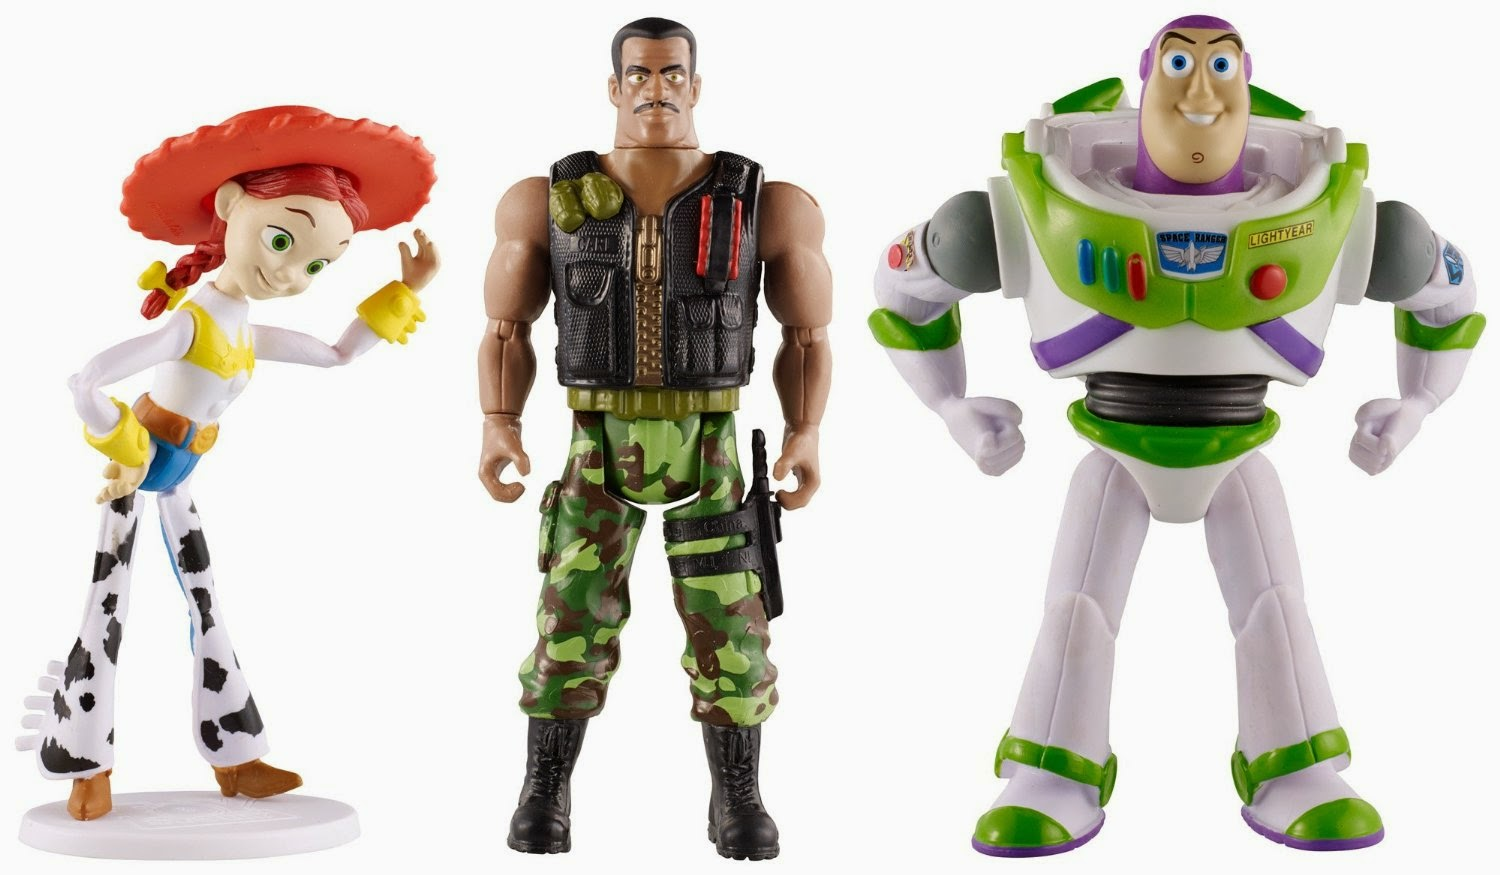 Disney Pixar Monsters University 3 Piece Room In A Box: Toy Story Of TERROR! Video Toy Review Of Combat Carl, Glow